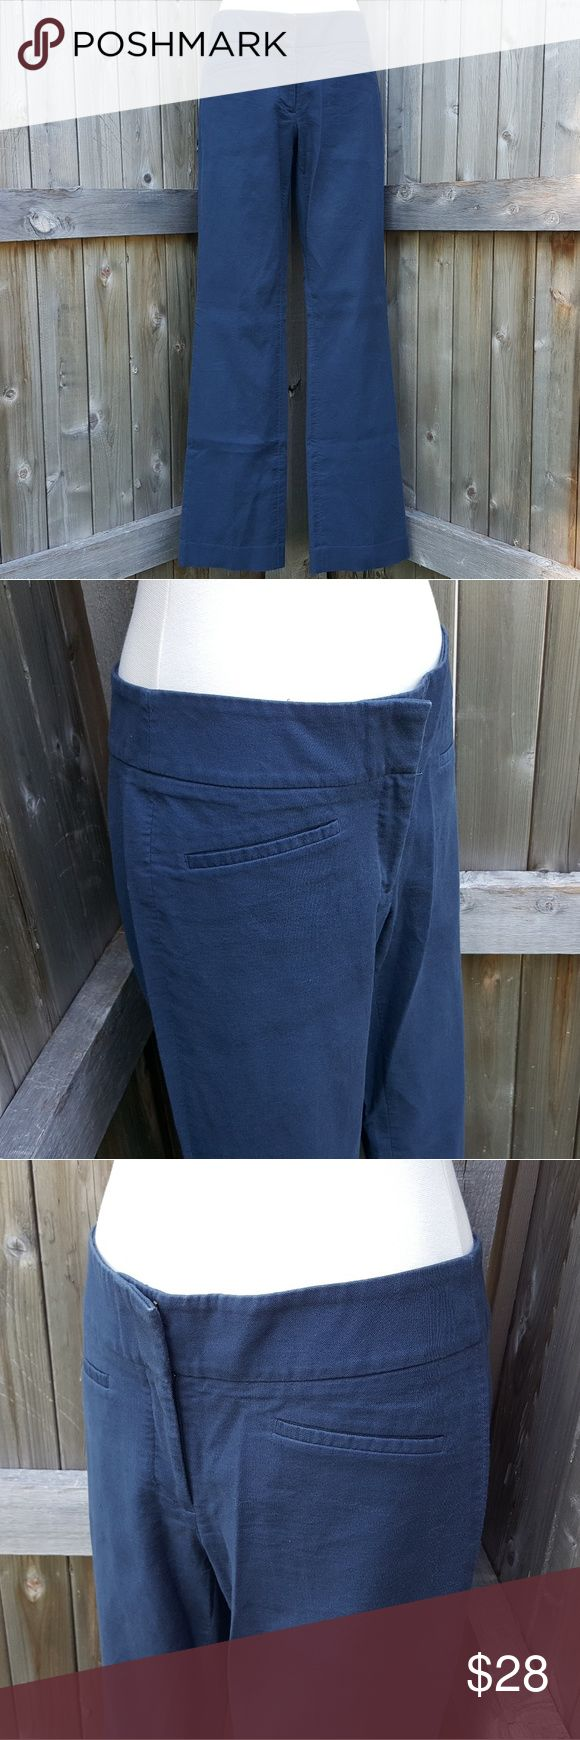 """Ann Taylor Loft Julie Bootcut Navy Dress Pants 2 T These classic dress pants come in a versatile navy blue. They are in good pre-owned condition with only minor signs of wear as can be seen in the photos (minor snag). They are a size 2 tall. The inseam is approximately 33"""" and the front rise is about 8.5"""". LOFT Pants Boot Cut & Flare"""